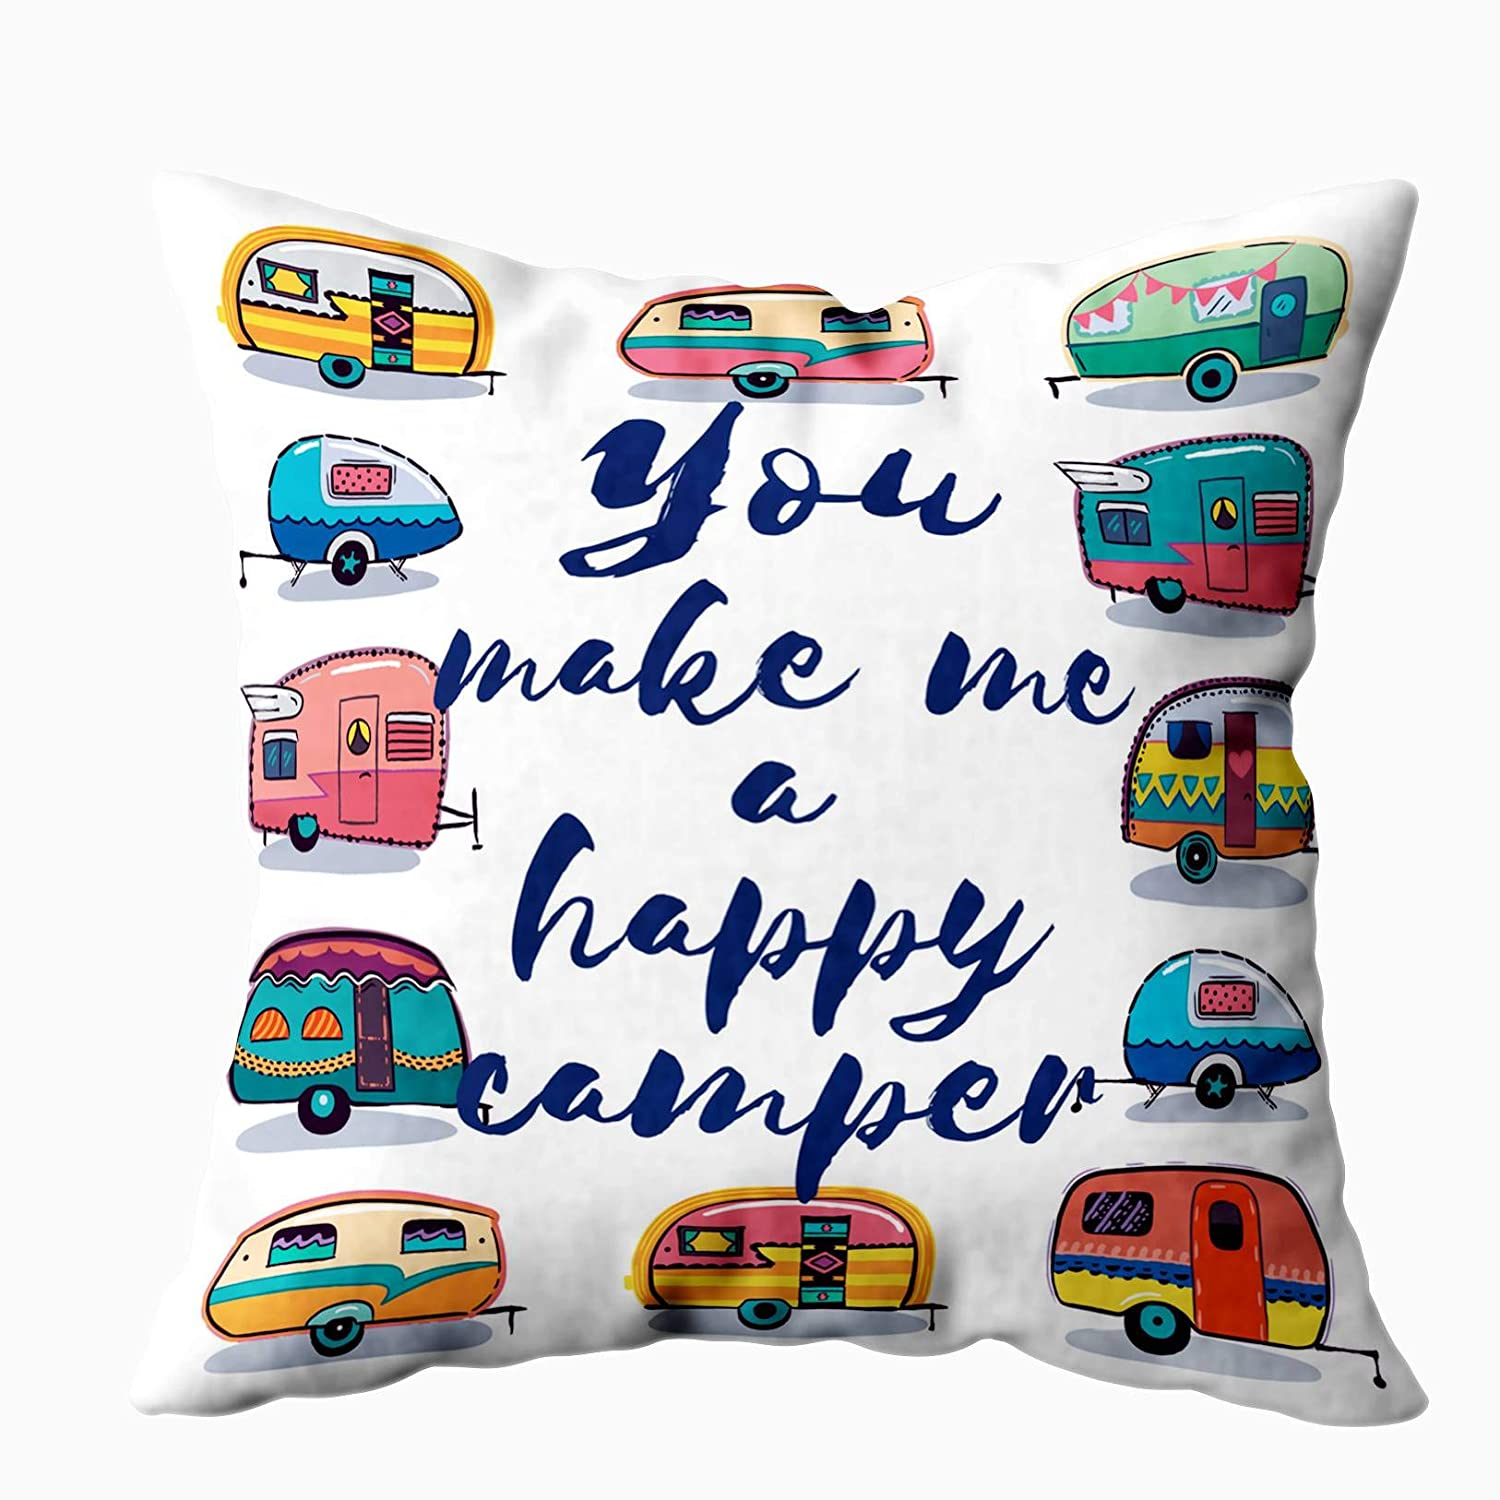 EMMTEEY Camping Zip Pillow Cover,16x16 Inch Pillow Covers Home Throw Pillow Covers for Sofa You Make me a Happy Camper Card Happy Camper Card Square Double Sided Printing,Blue White